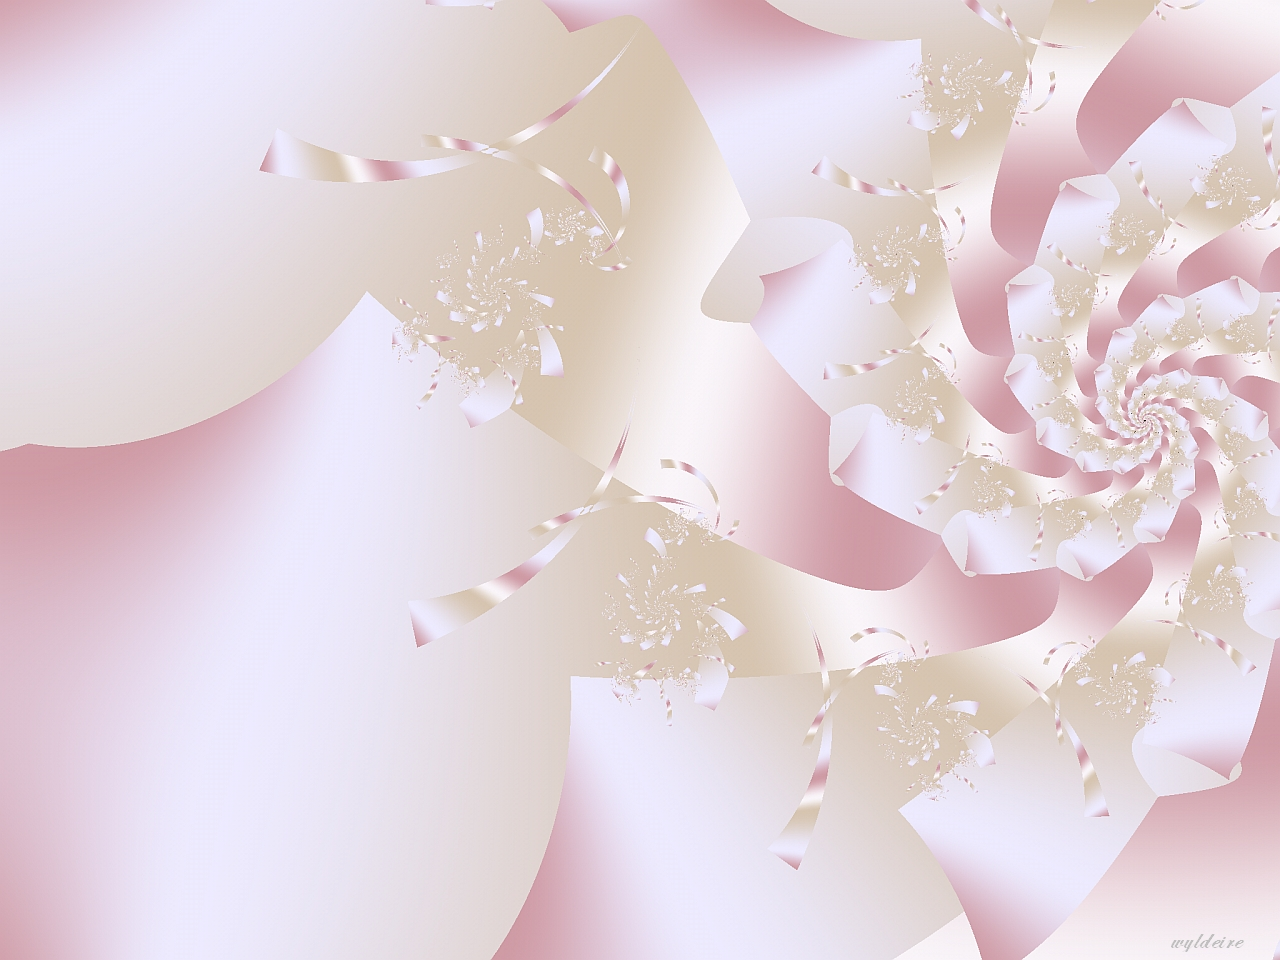 pretty in pink wallpaper by wyldeire customization wallpaper fractals 1280x960